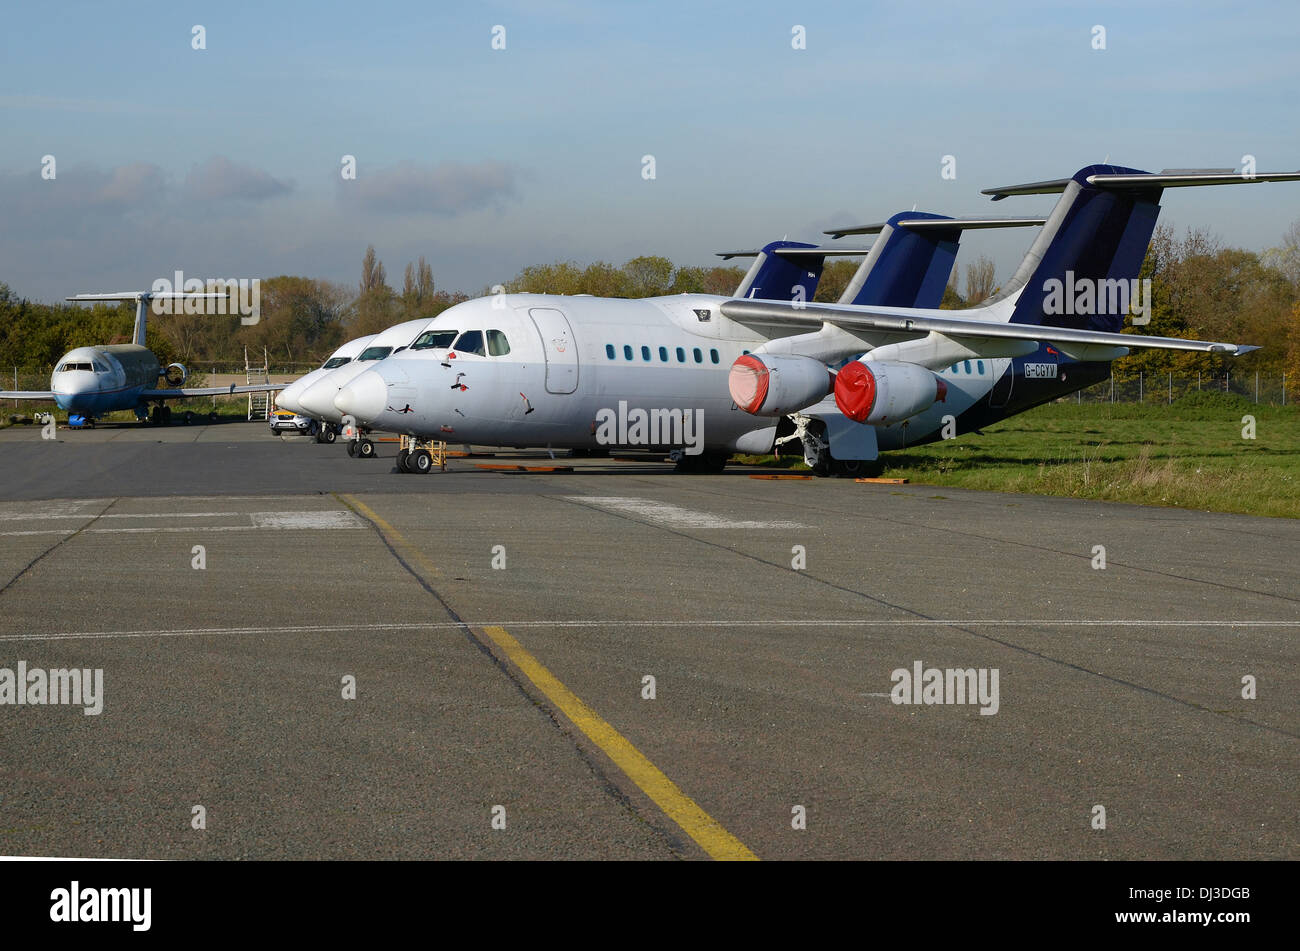 A number of aircraft in storage at Southend Airport, with fire and evacuation trainer aircraft in the background. 'Graveyard' - Stock Image